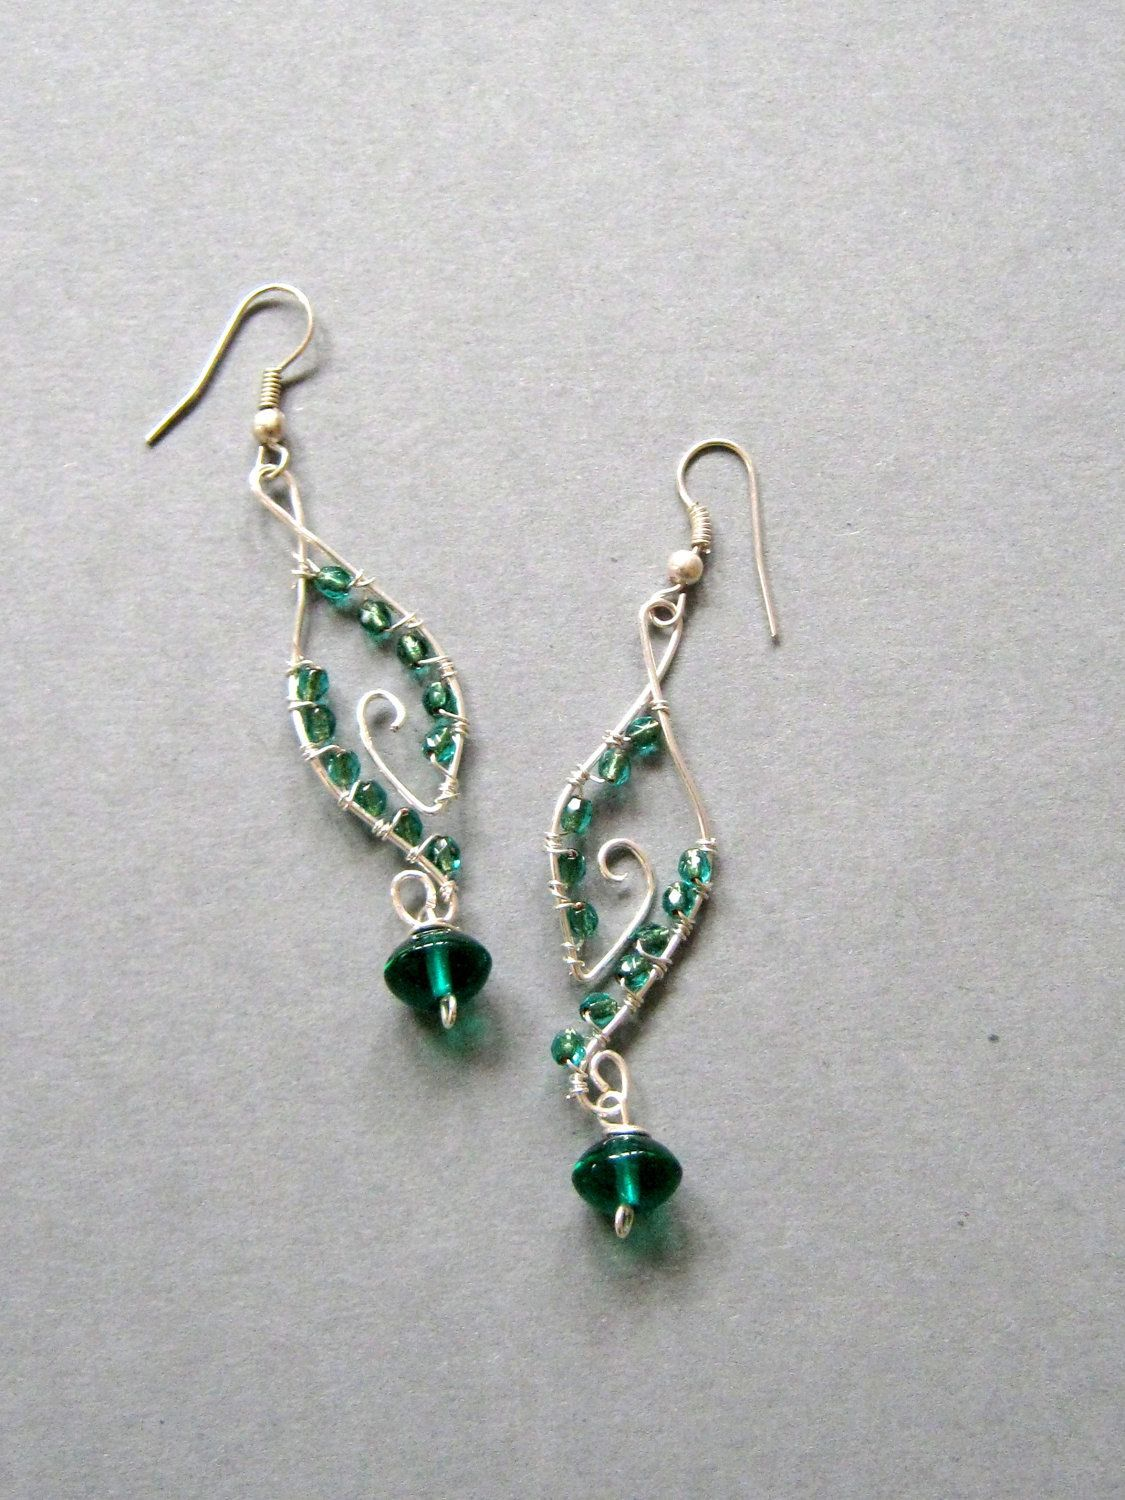 Luxury Handmade Wire Wrapped Earrings Inspiration - Wiring Diagram ...